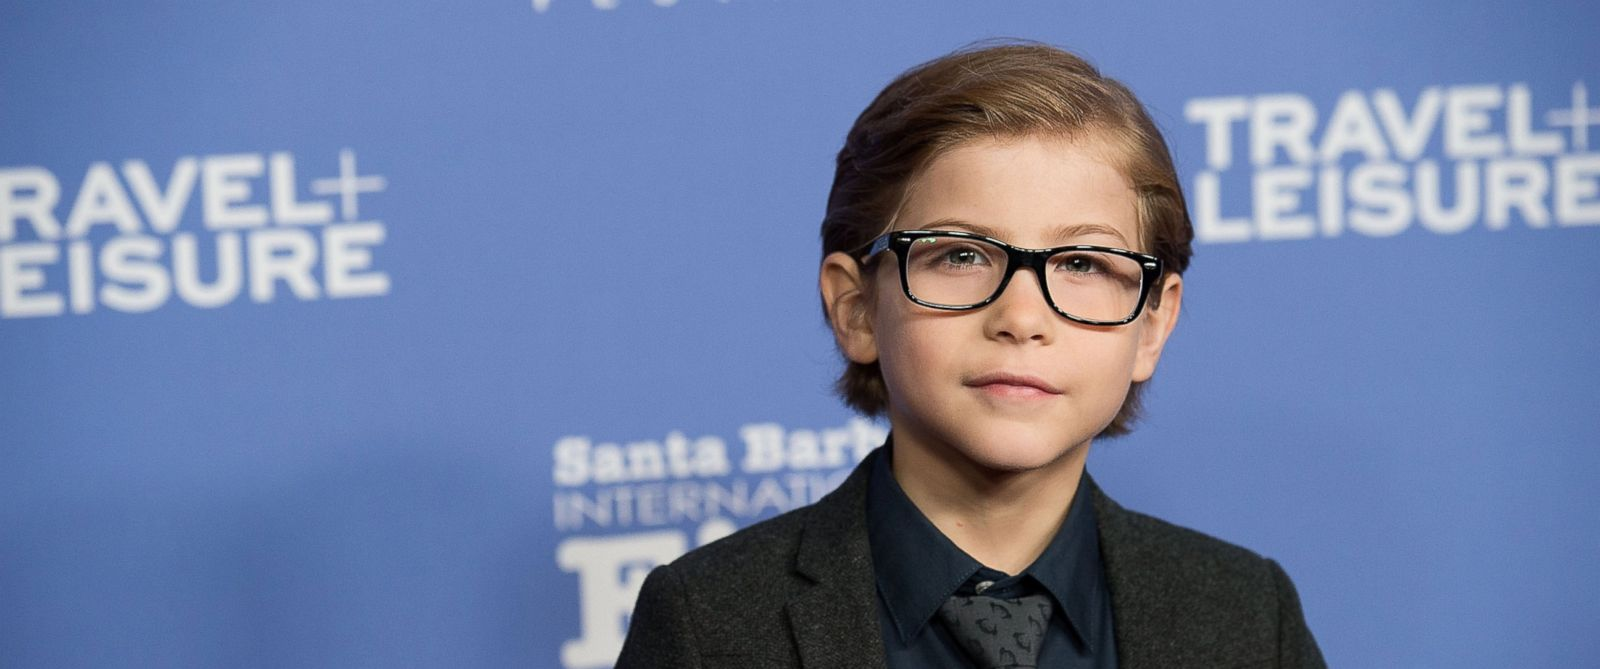 PHOTO: Actor Jacob Tremblay arrives for the presentation of the Virtuosos Award for The 31st Santa Barbara International Film Festival at the Arlington Theatre on Feb. 6, 2016 in Santa Barbara, Calif.